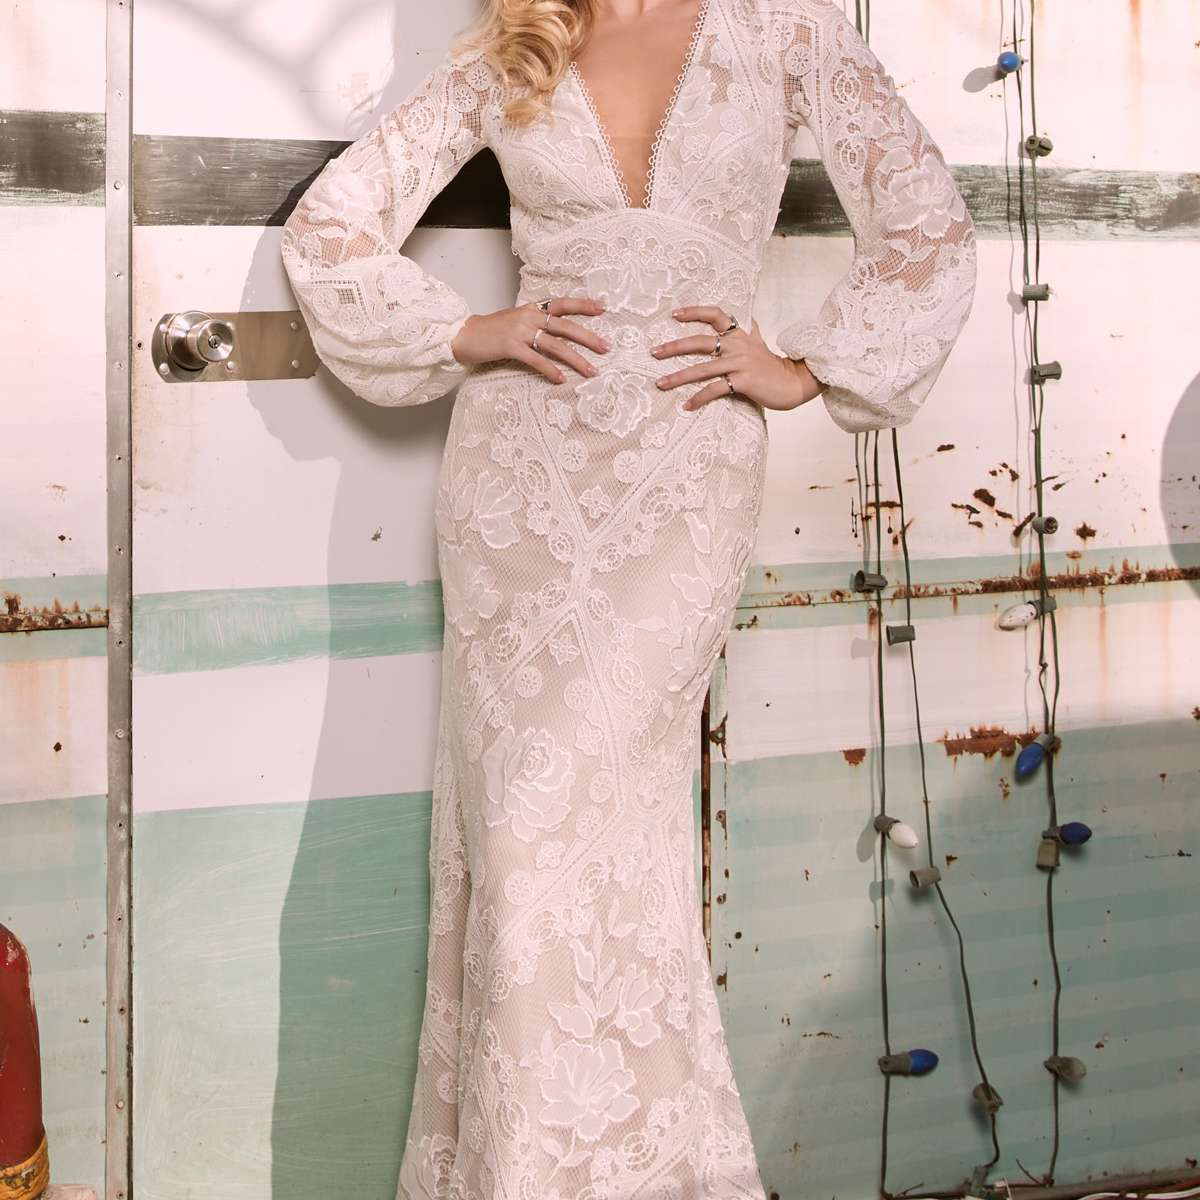 Model in allover lace plunging neckline empire waist fit-and-flare gown with long puffy sleeves